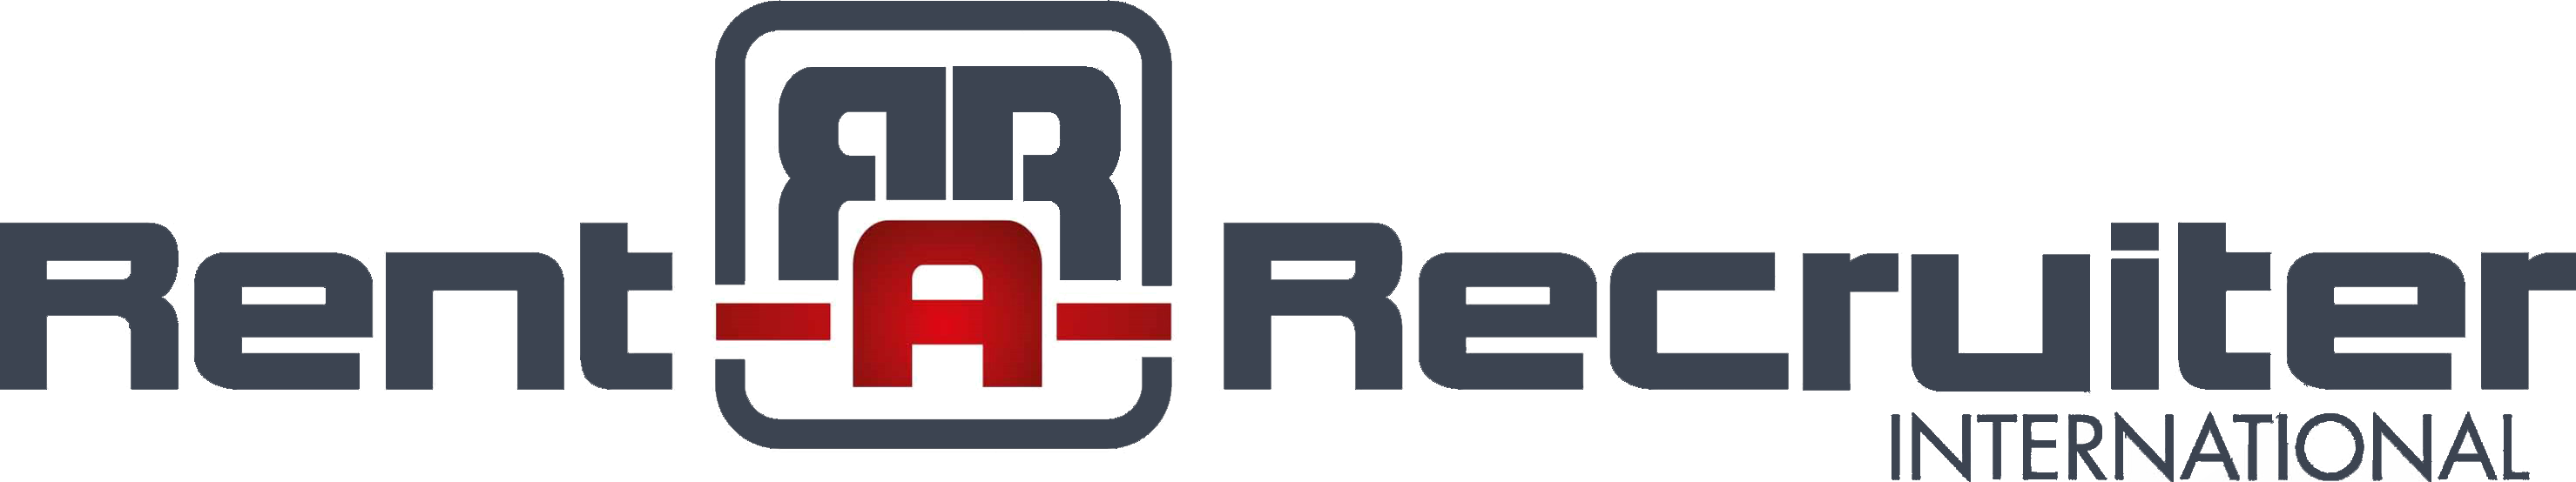 Rent-a-Recruiter logo